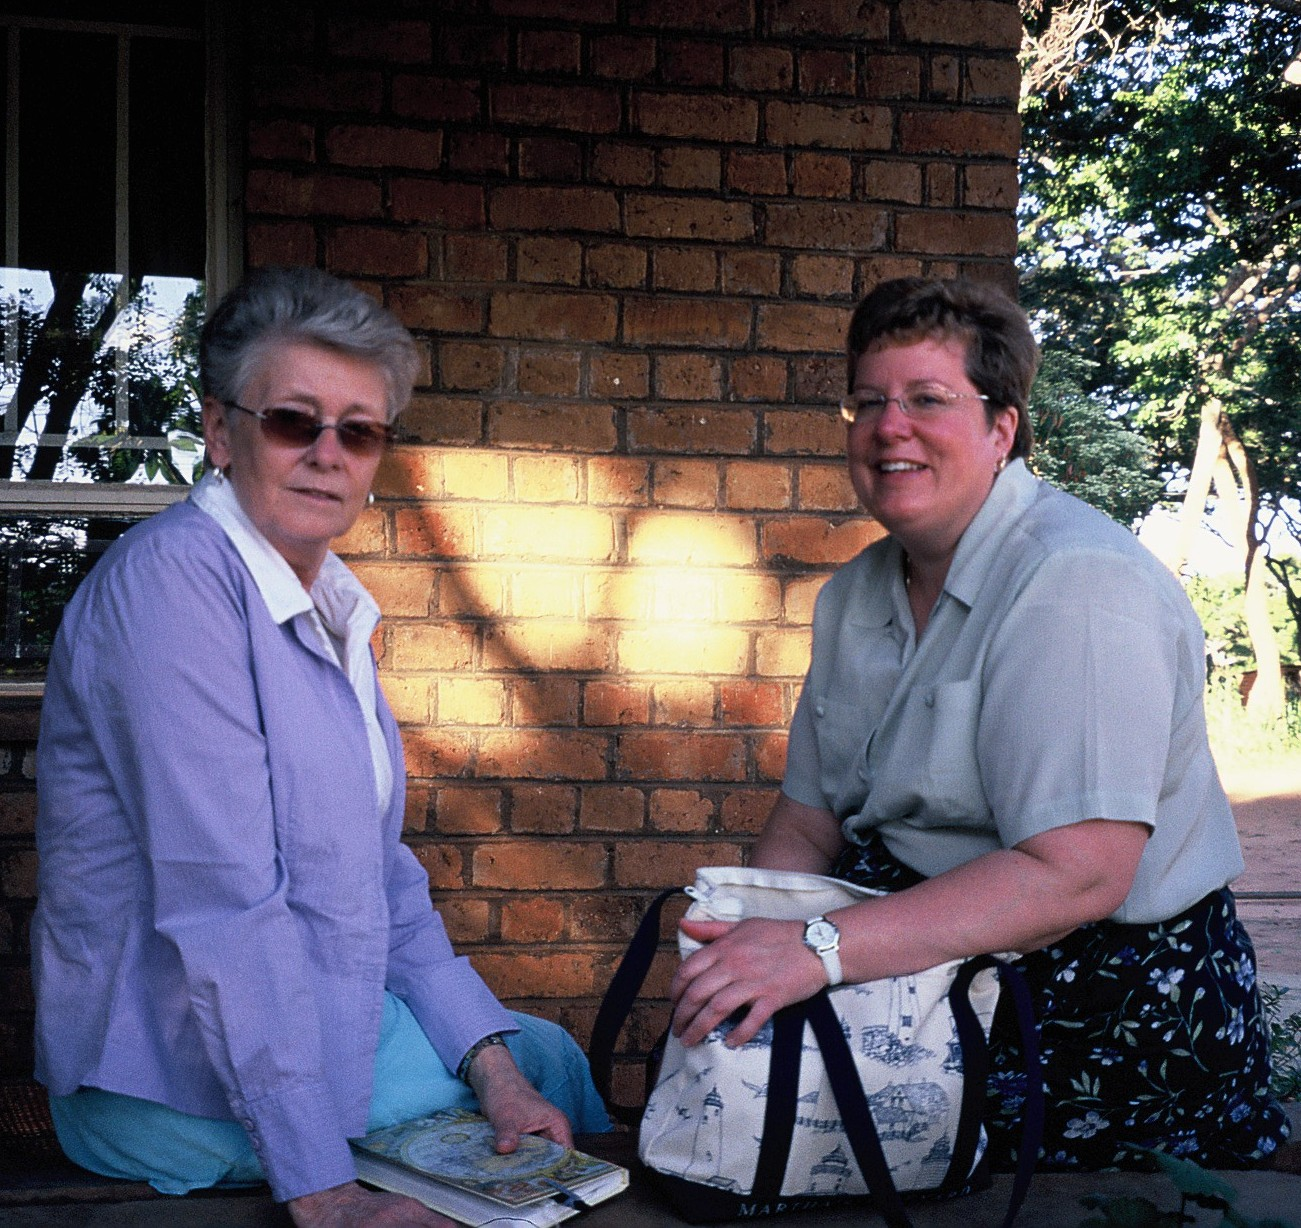 Carol and Linda in malawi on first trip 2006